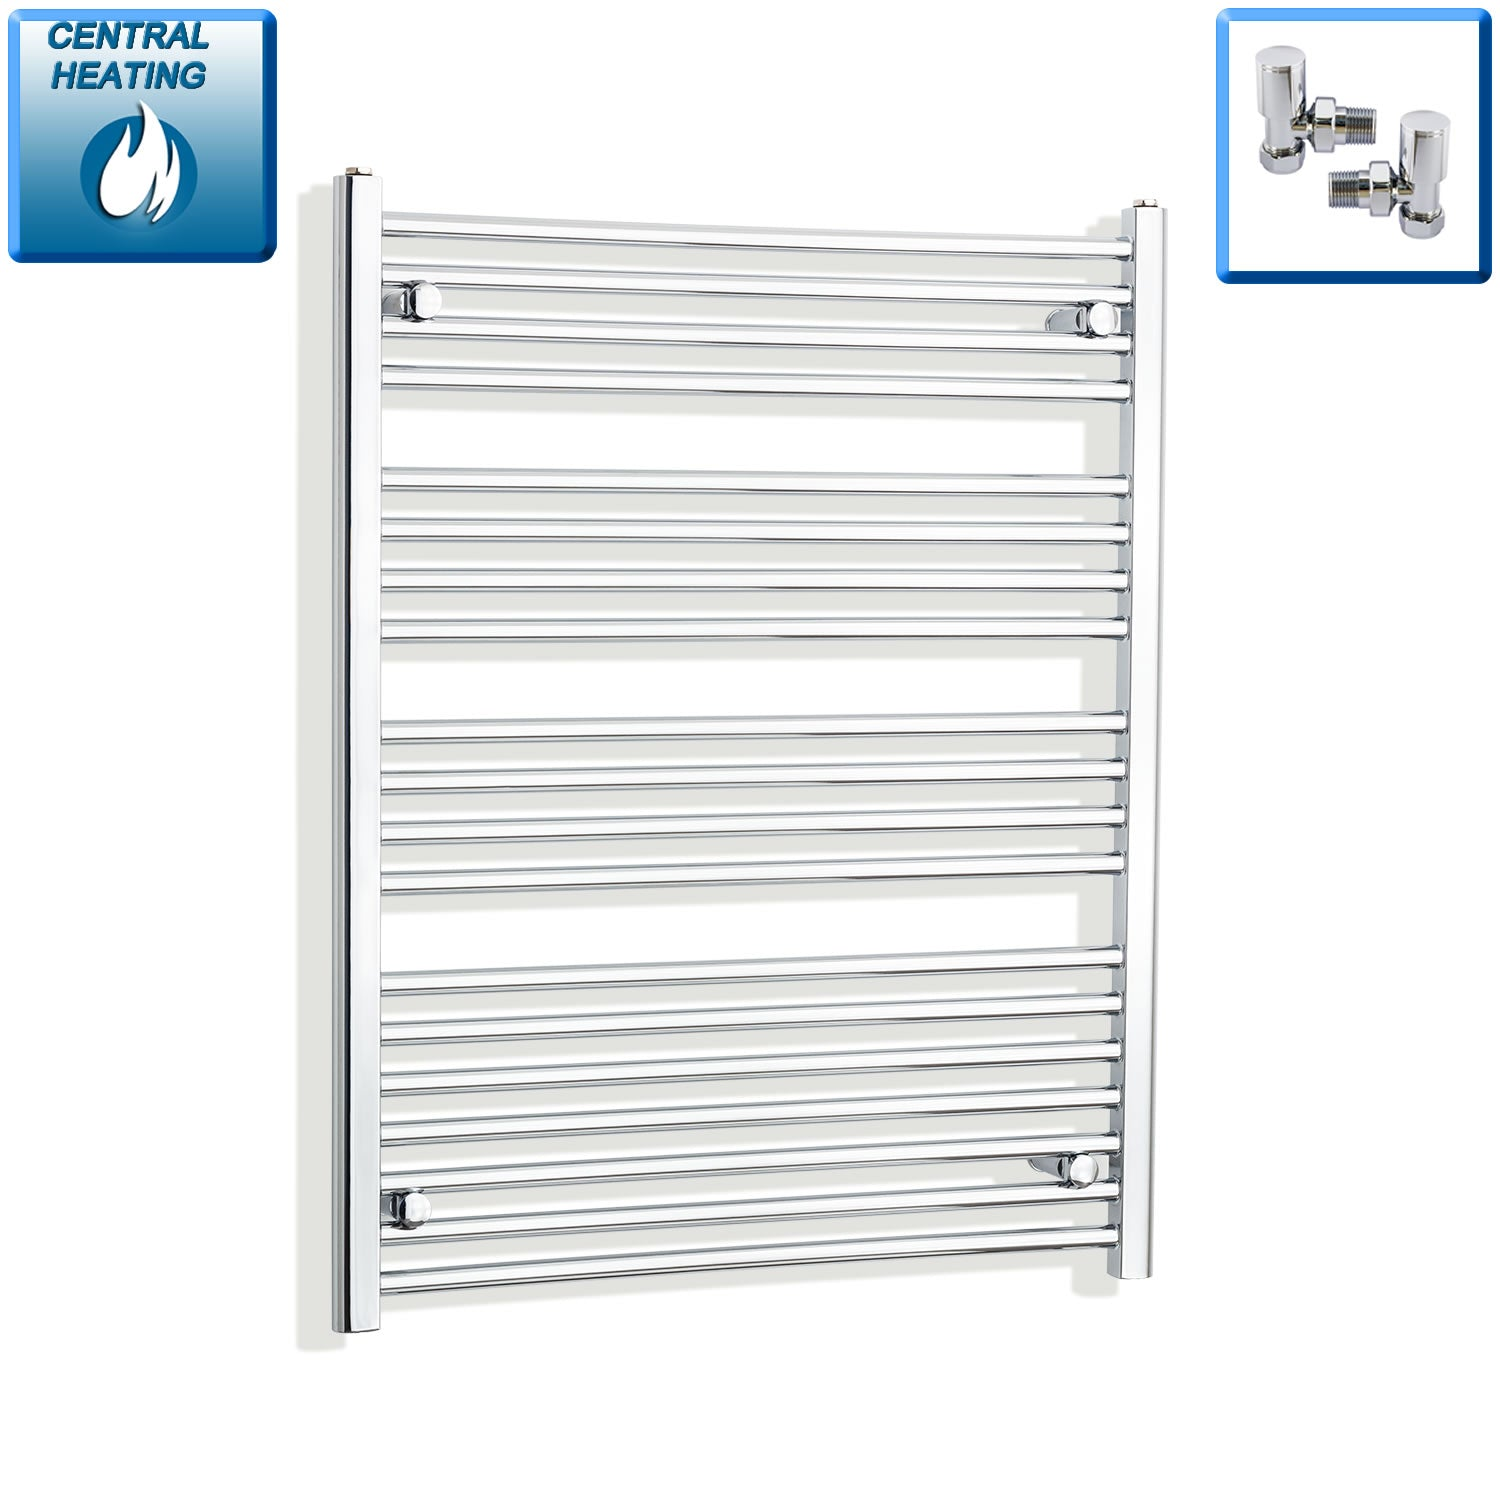 850mm Wide 1000mm High Flat Chrome Heated Towel Rail Radiator HTR,With Angled Valve